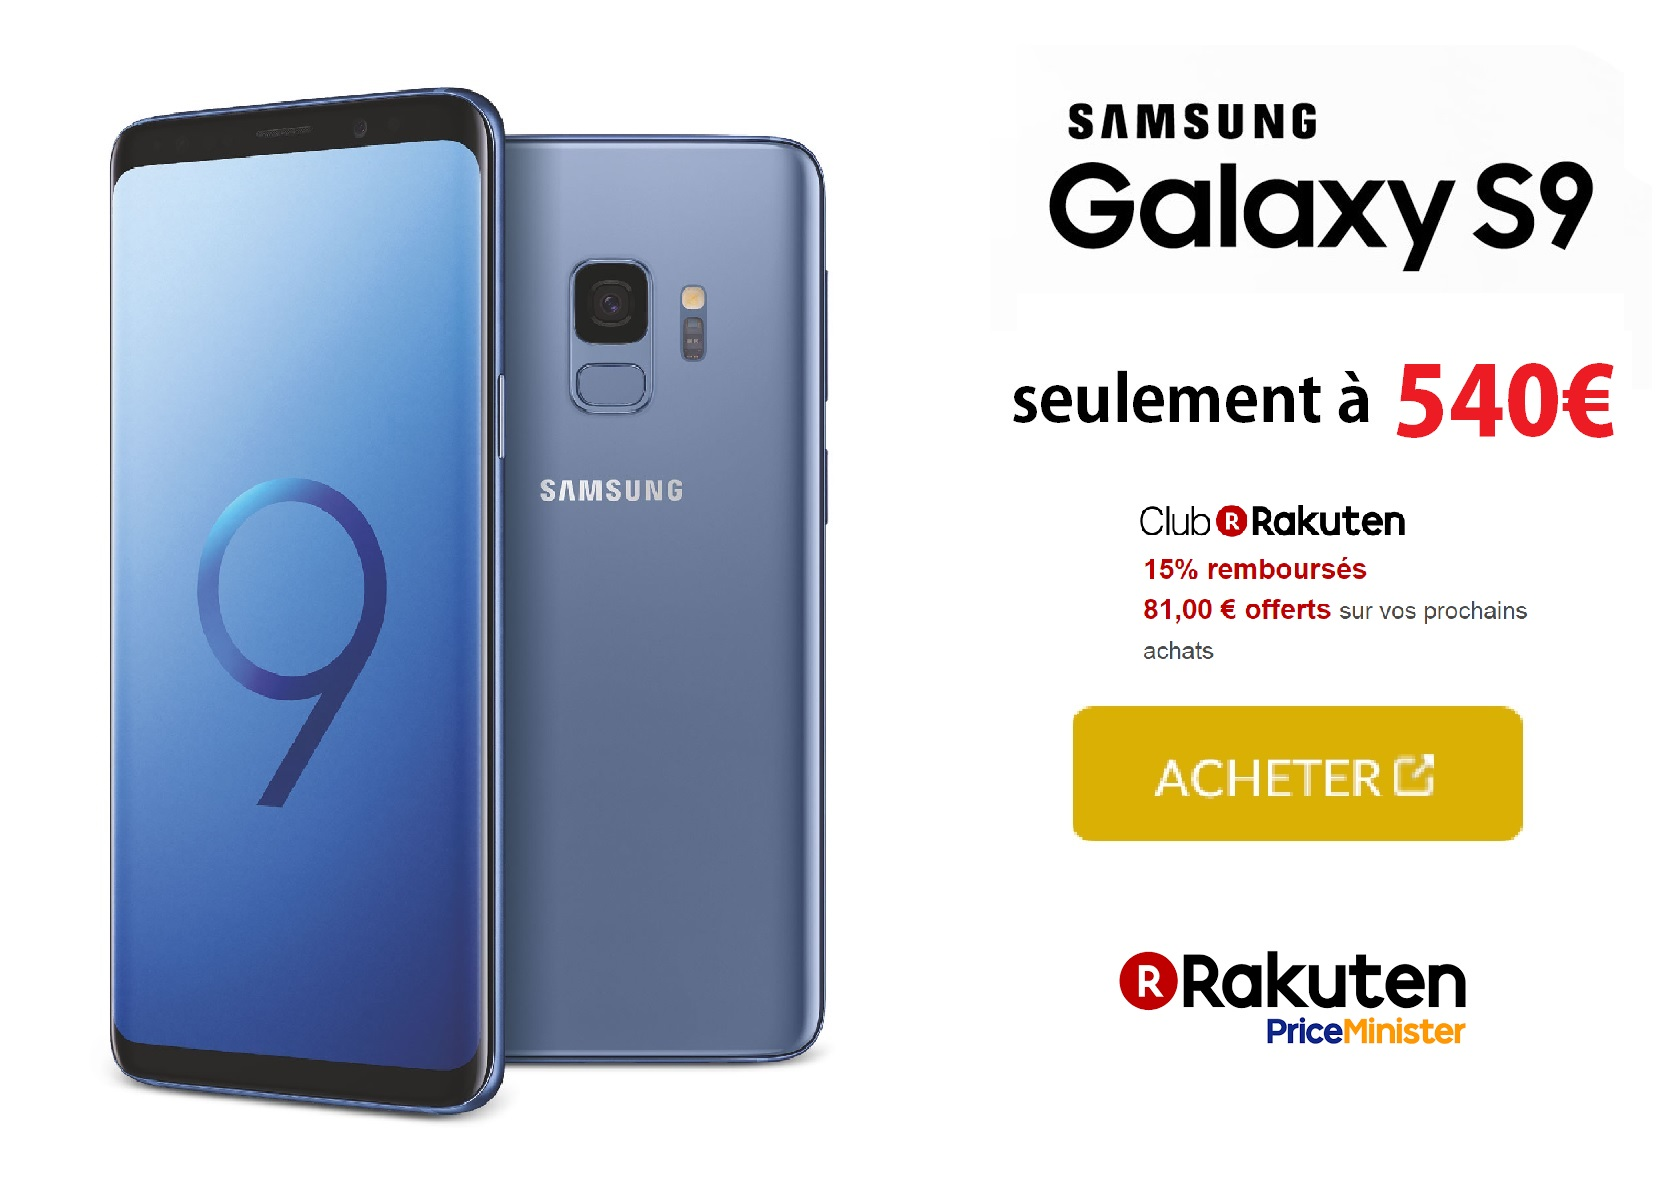 bon plan le samsung galaxy s9 540 avec 80 rembours s en superpoints priceminister. Black Bedroom Furniture Sets. Home Design Ideas